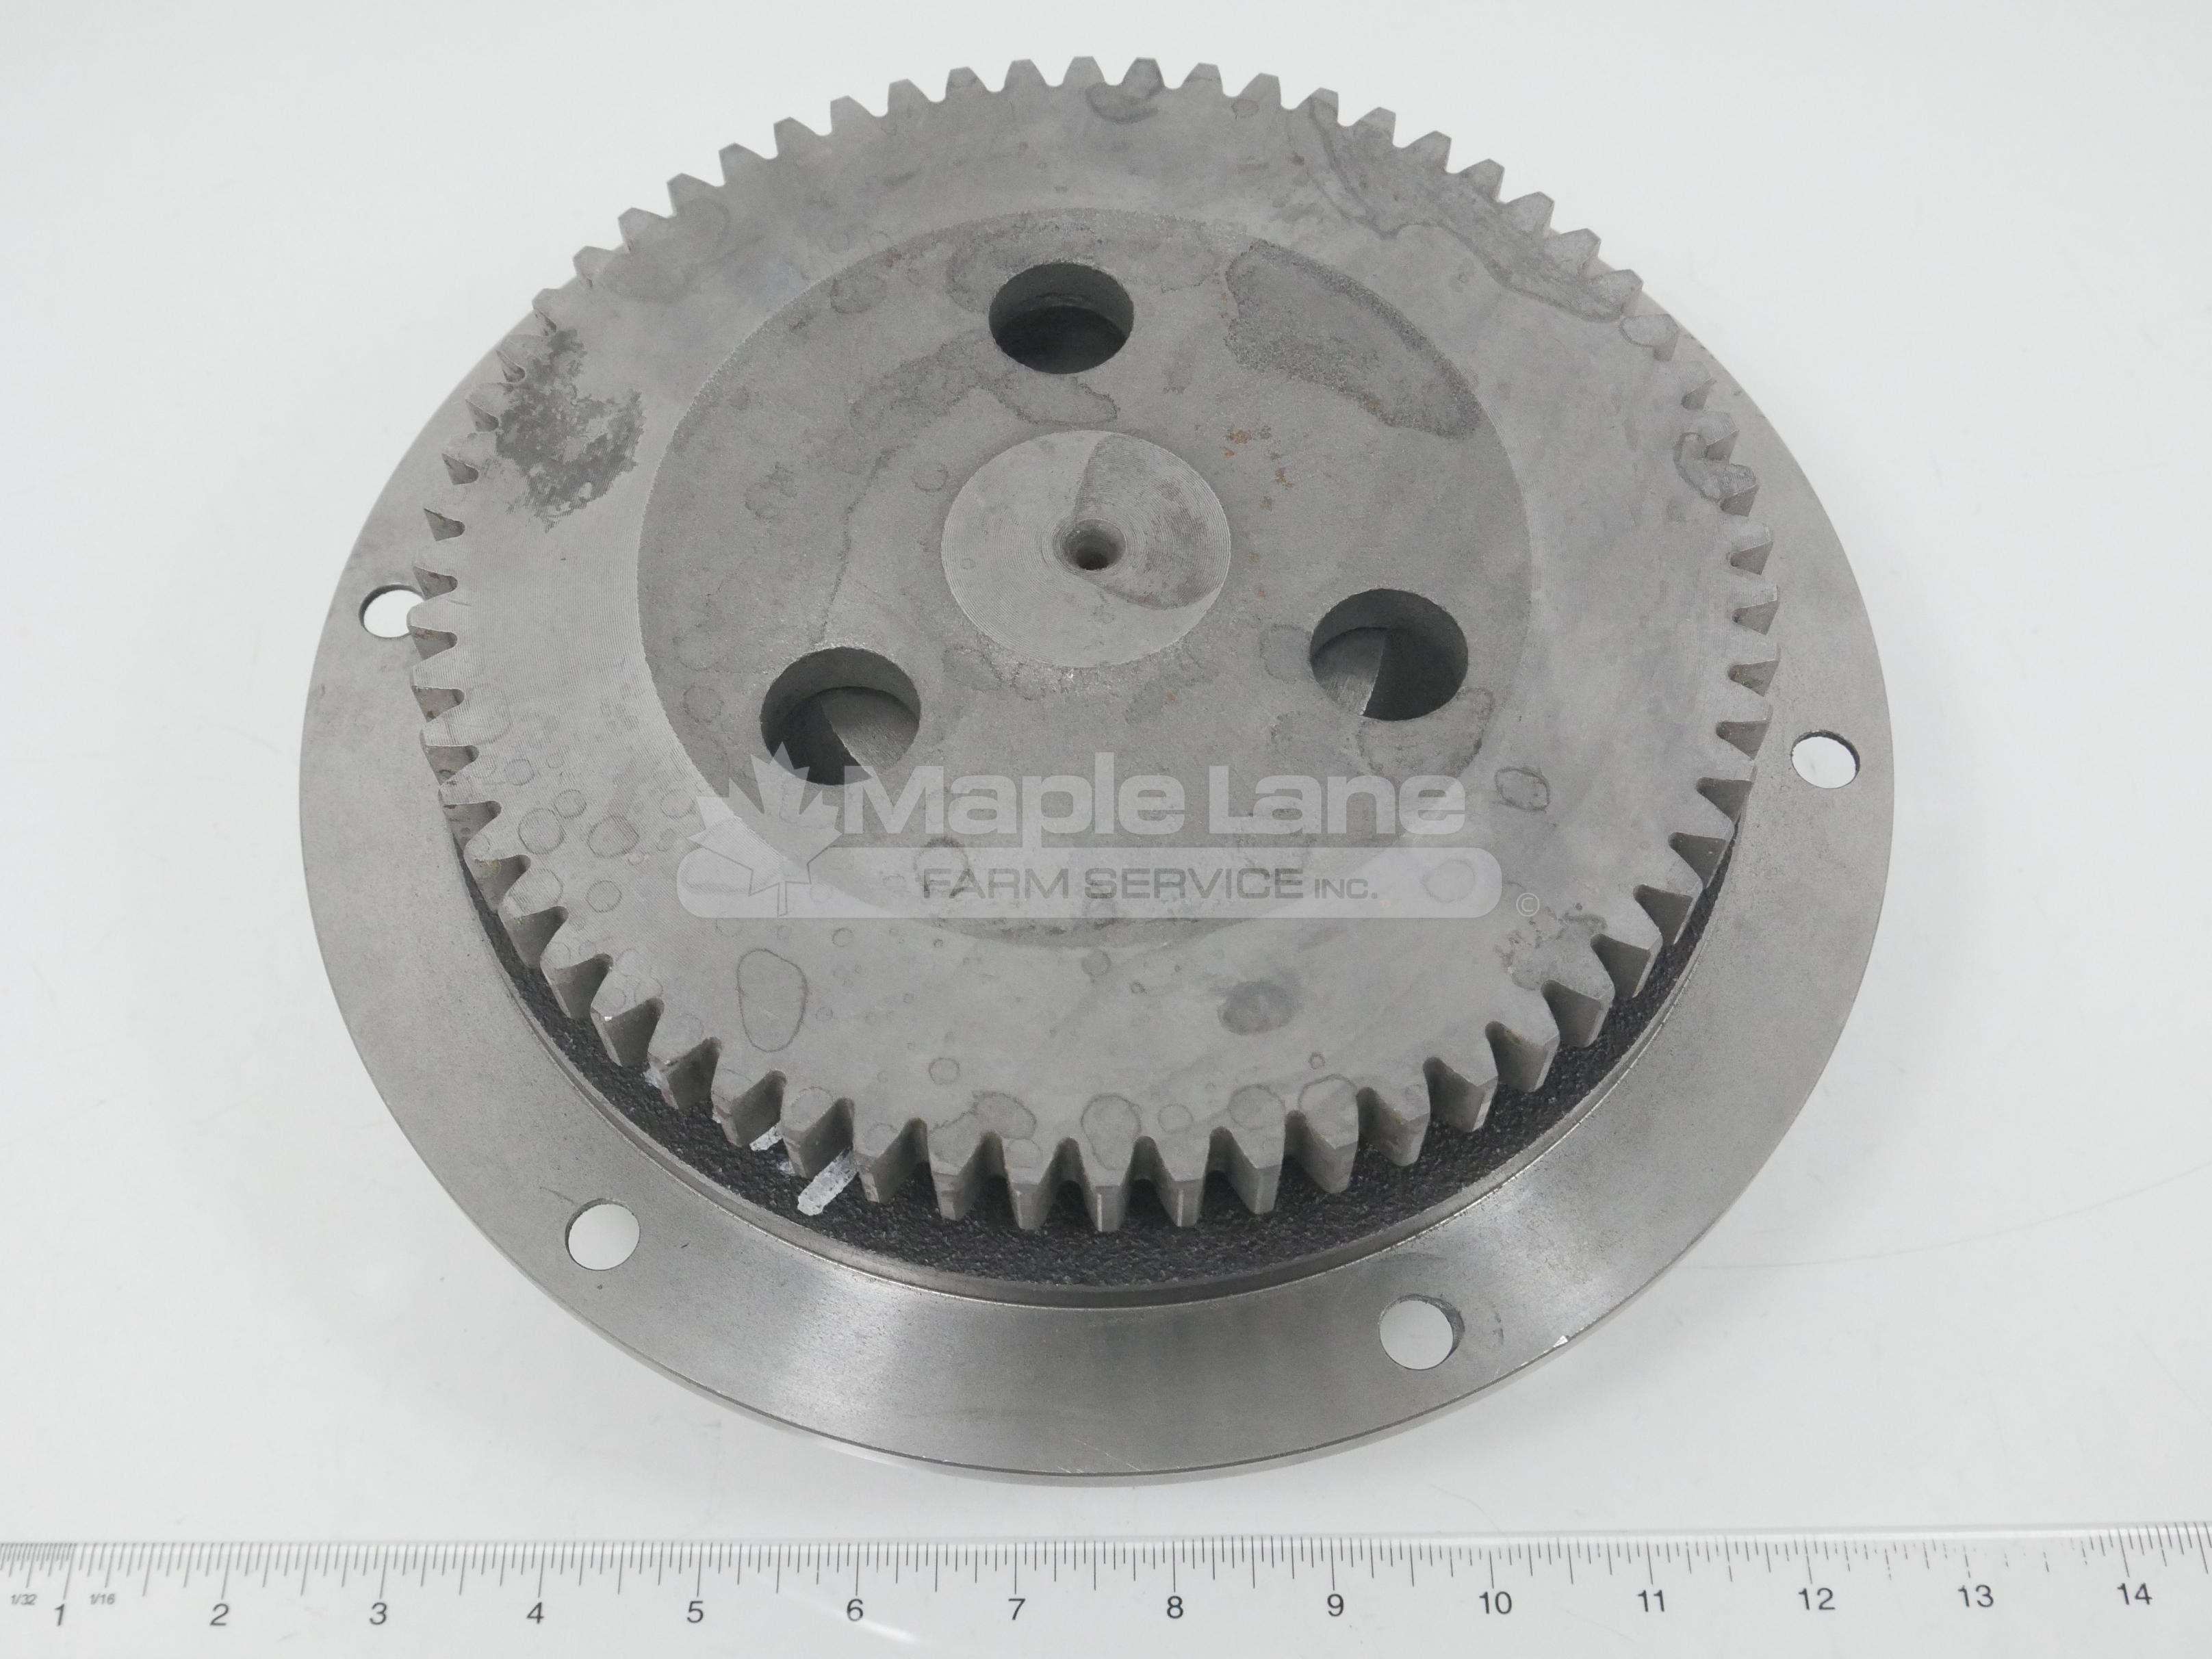 ACW3820830 Spindle